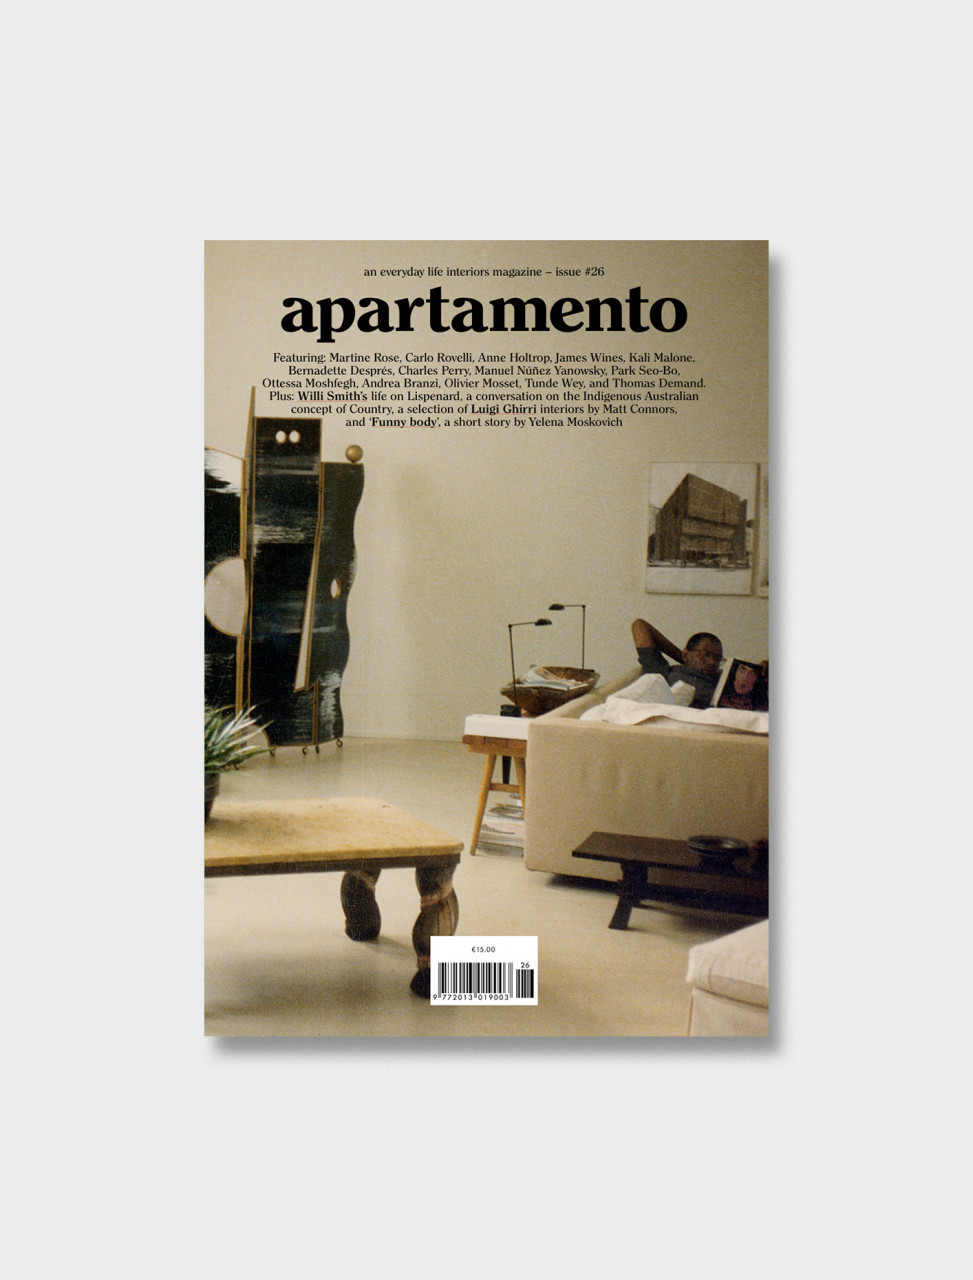 977201301900326  Apartamento Magazine Issue 26